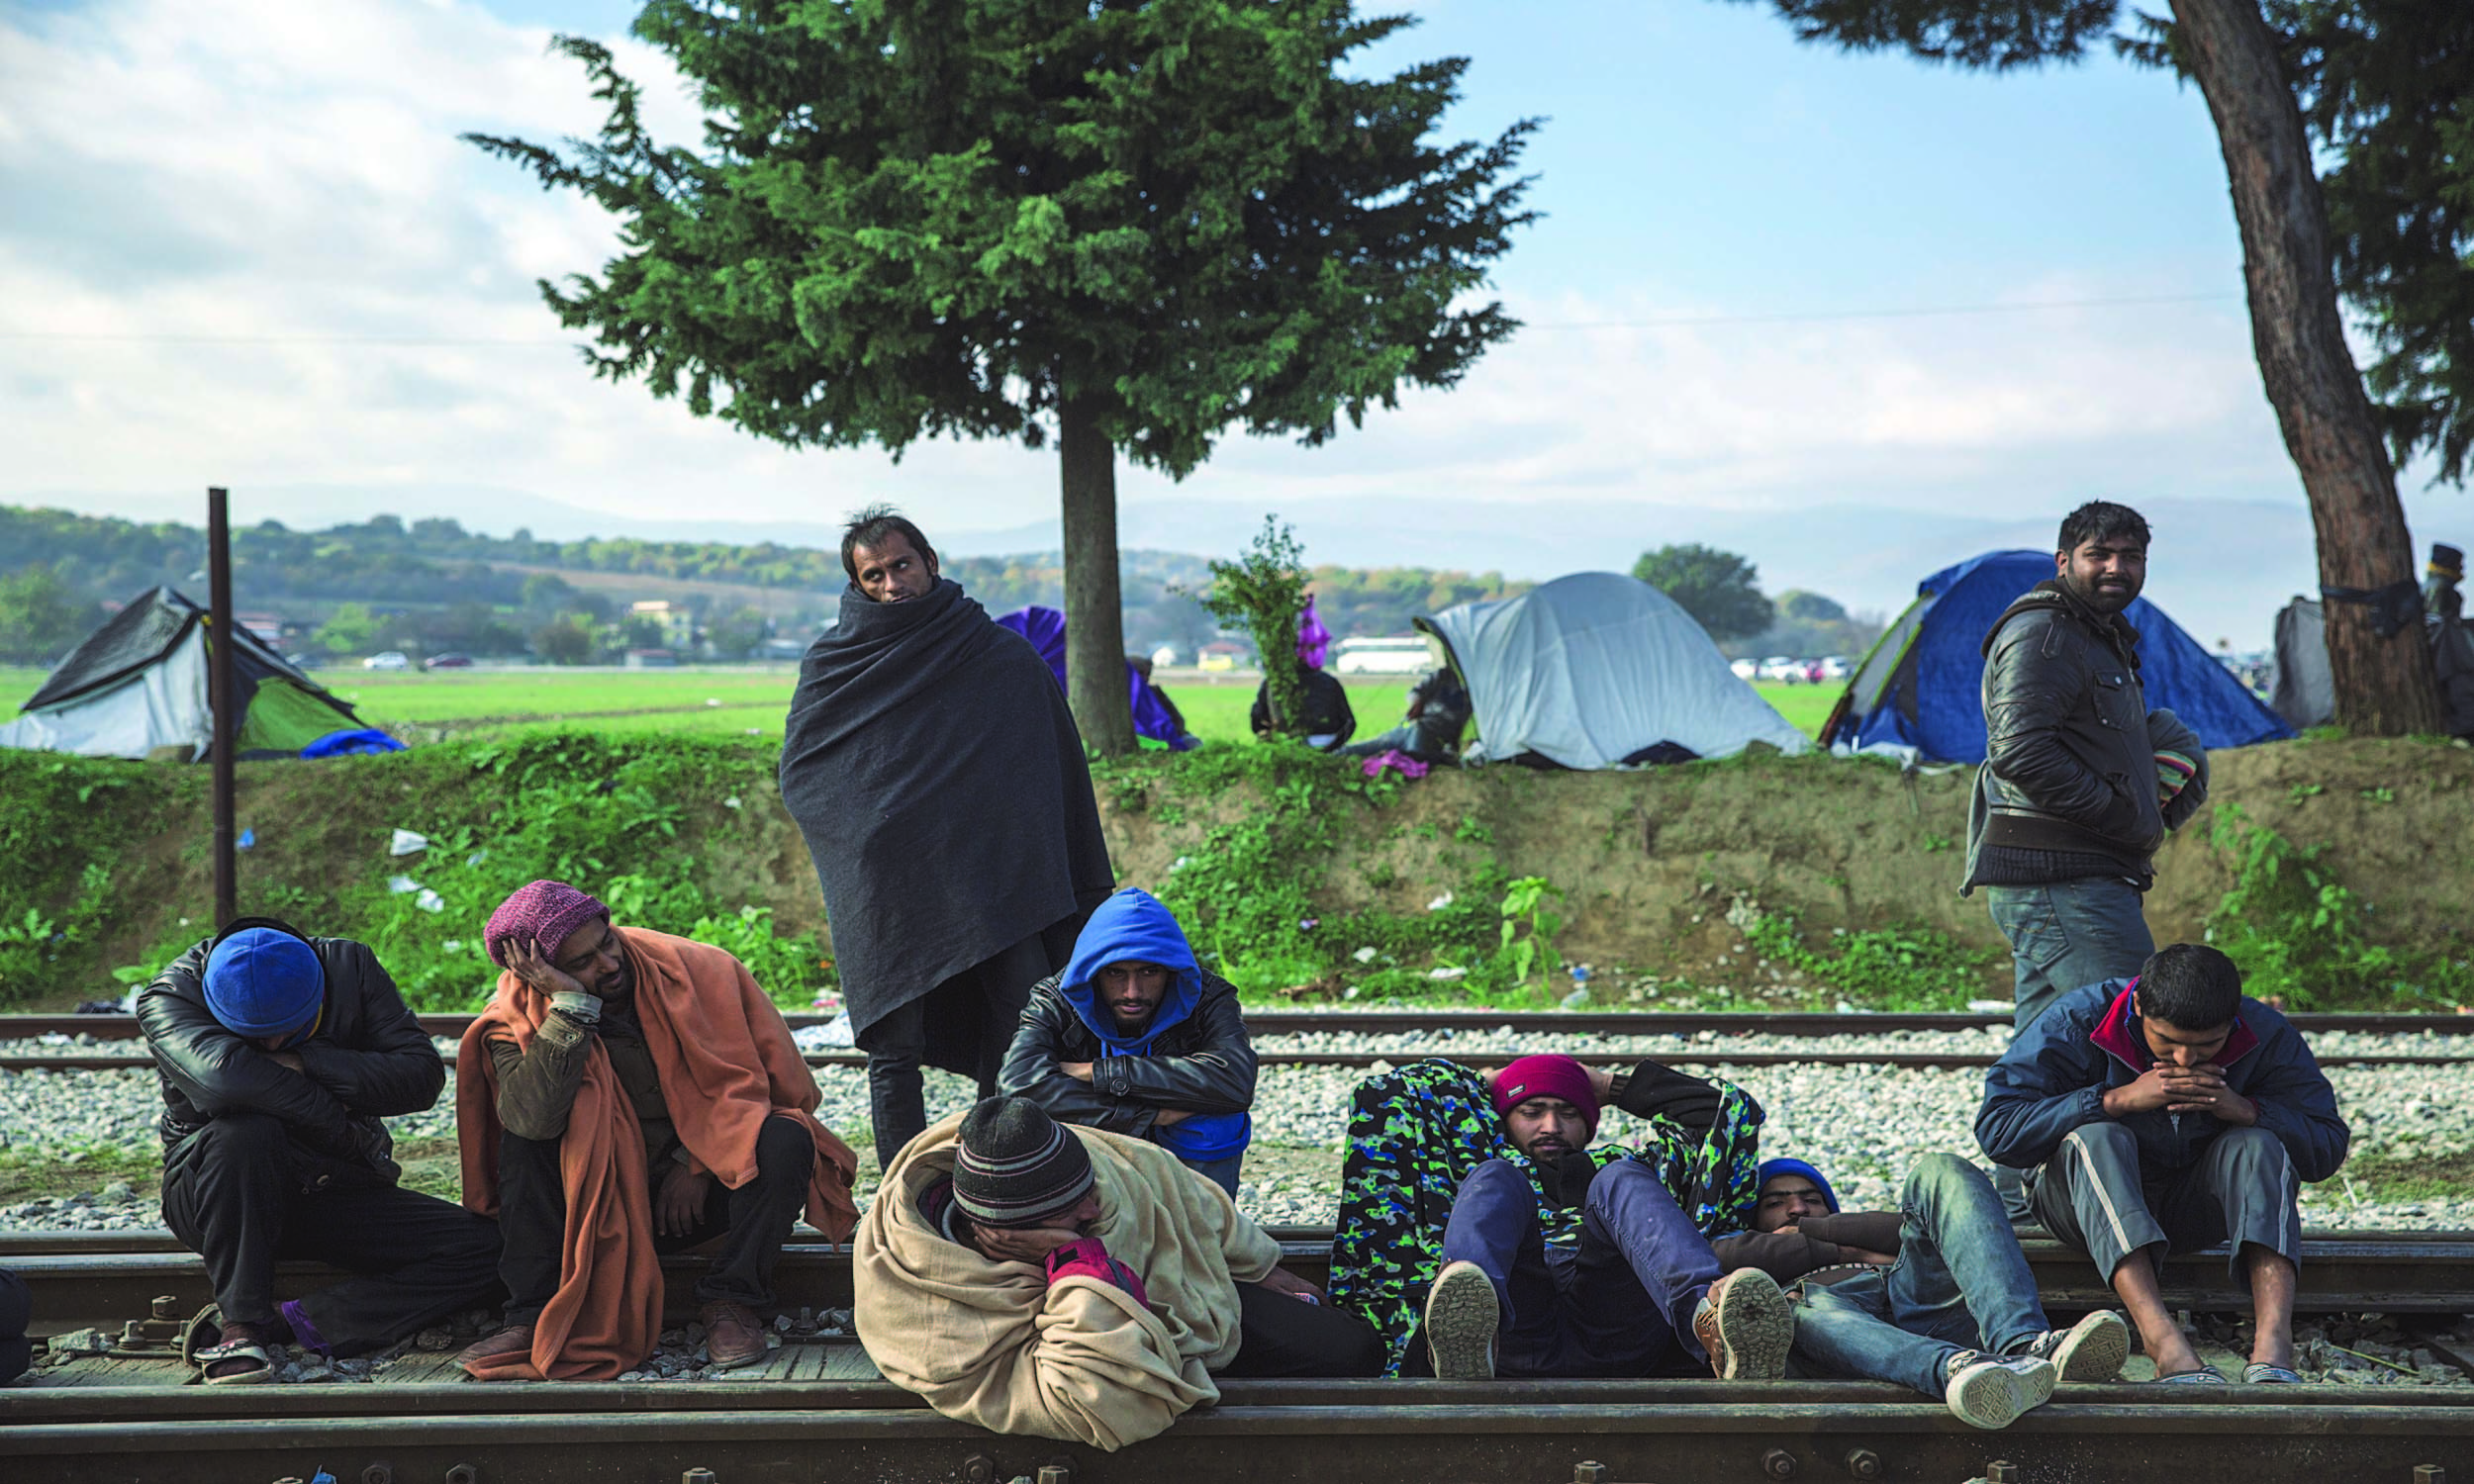 Pakistani migrants stranded in Greece sleep on the train tracks at Idomeni, an informal camp on the Macedonian border | Jodi Hilton